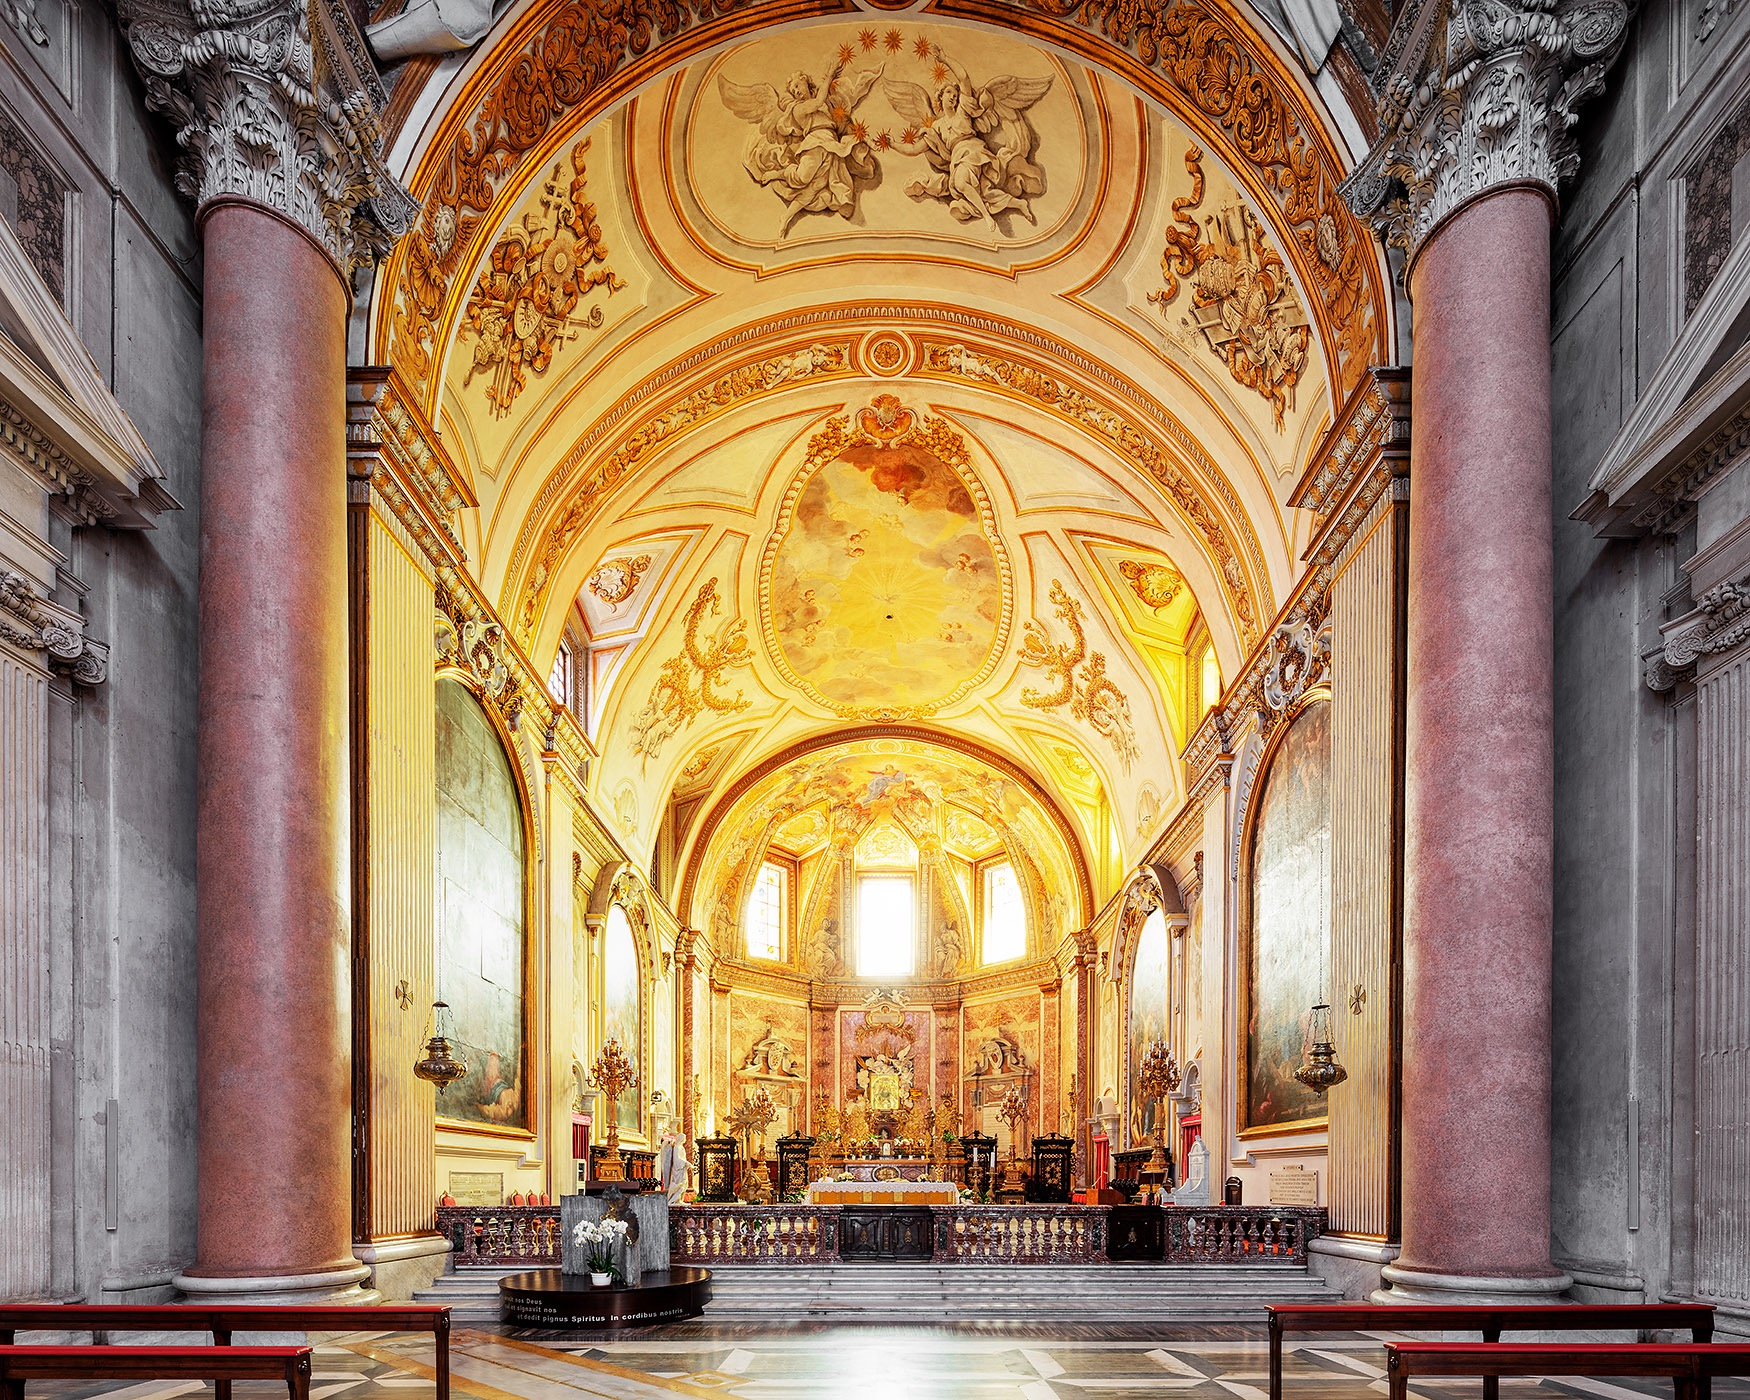 The Basilica of St. Mary of the Angels and the Martyrs